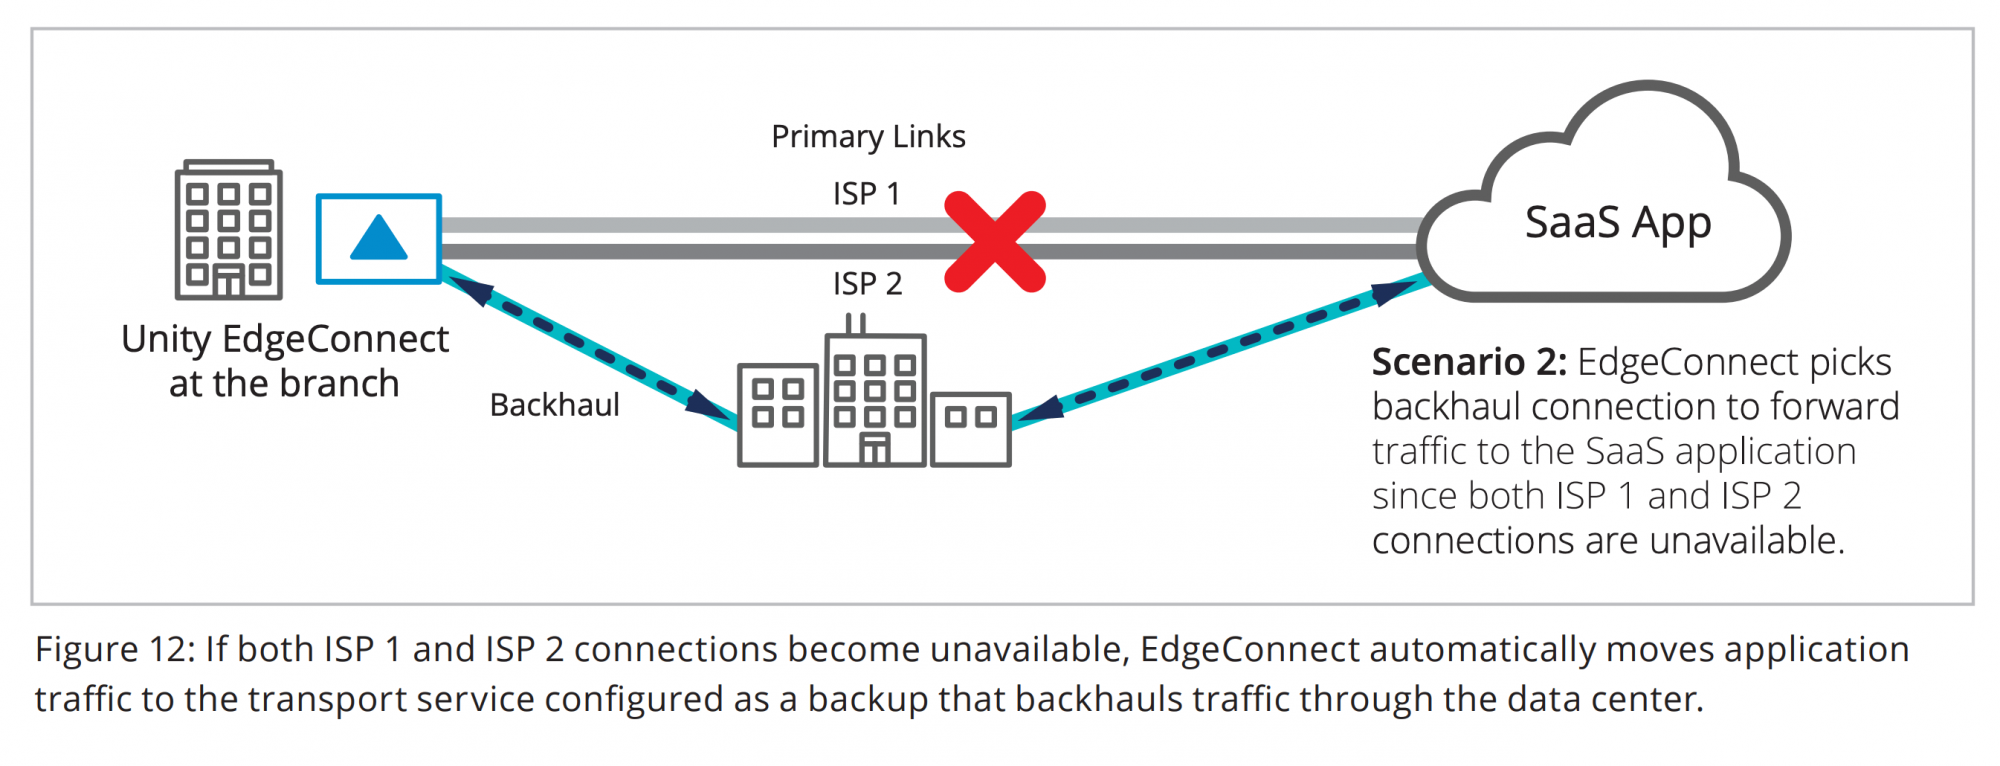 Figure 12: If both ISP 1 and ISP 2 connections become unavailable, EdgeConnect automatically moves application traffic to the transport service configured as a backup that backhauls traffic through the data center.